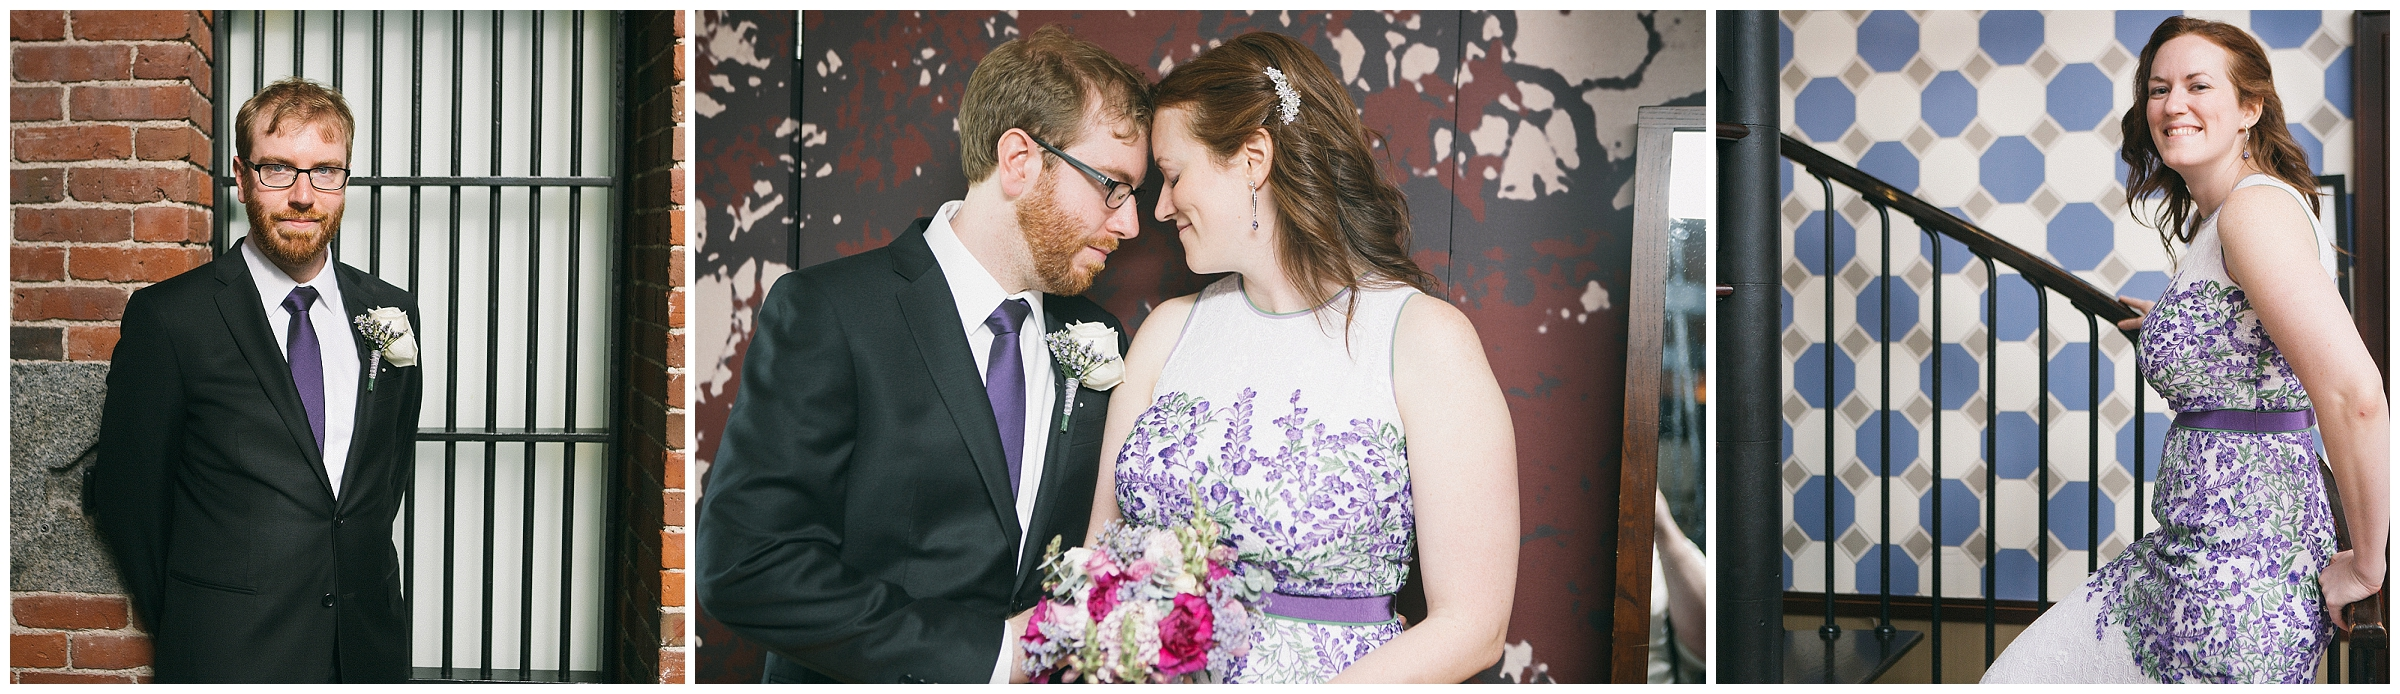 Liberty Hotel Boston Wedding Photography - Portraits of Bride and Groom. Groom in front of barred window, bride on spiral staircase by Ryan Richardson Photography.